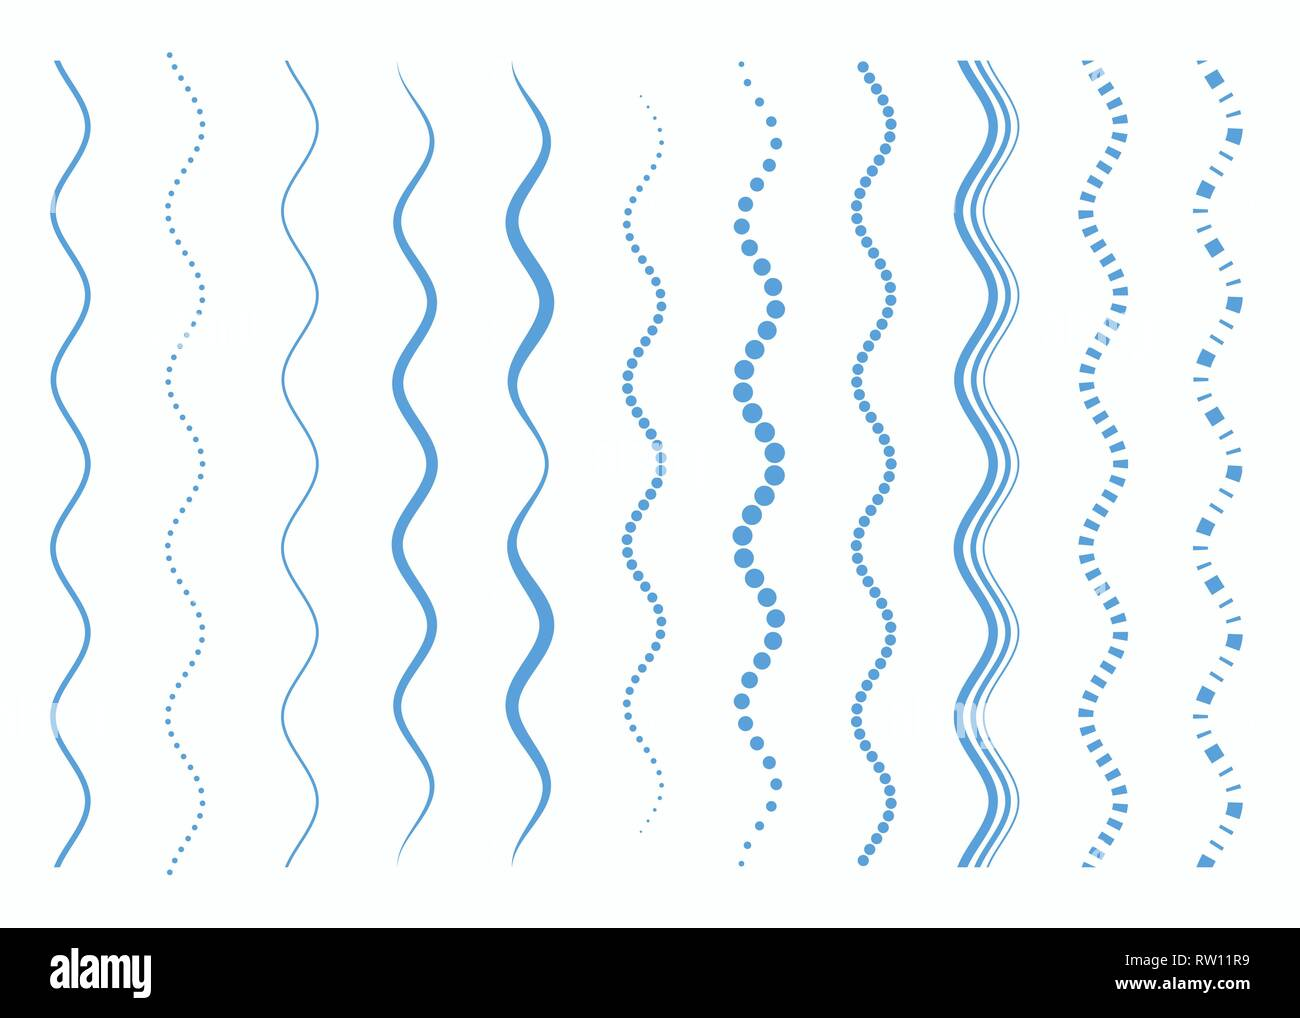 Set of different curved lines. Abstract vector elements. Light blue color. - Stock Image